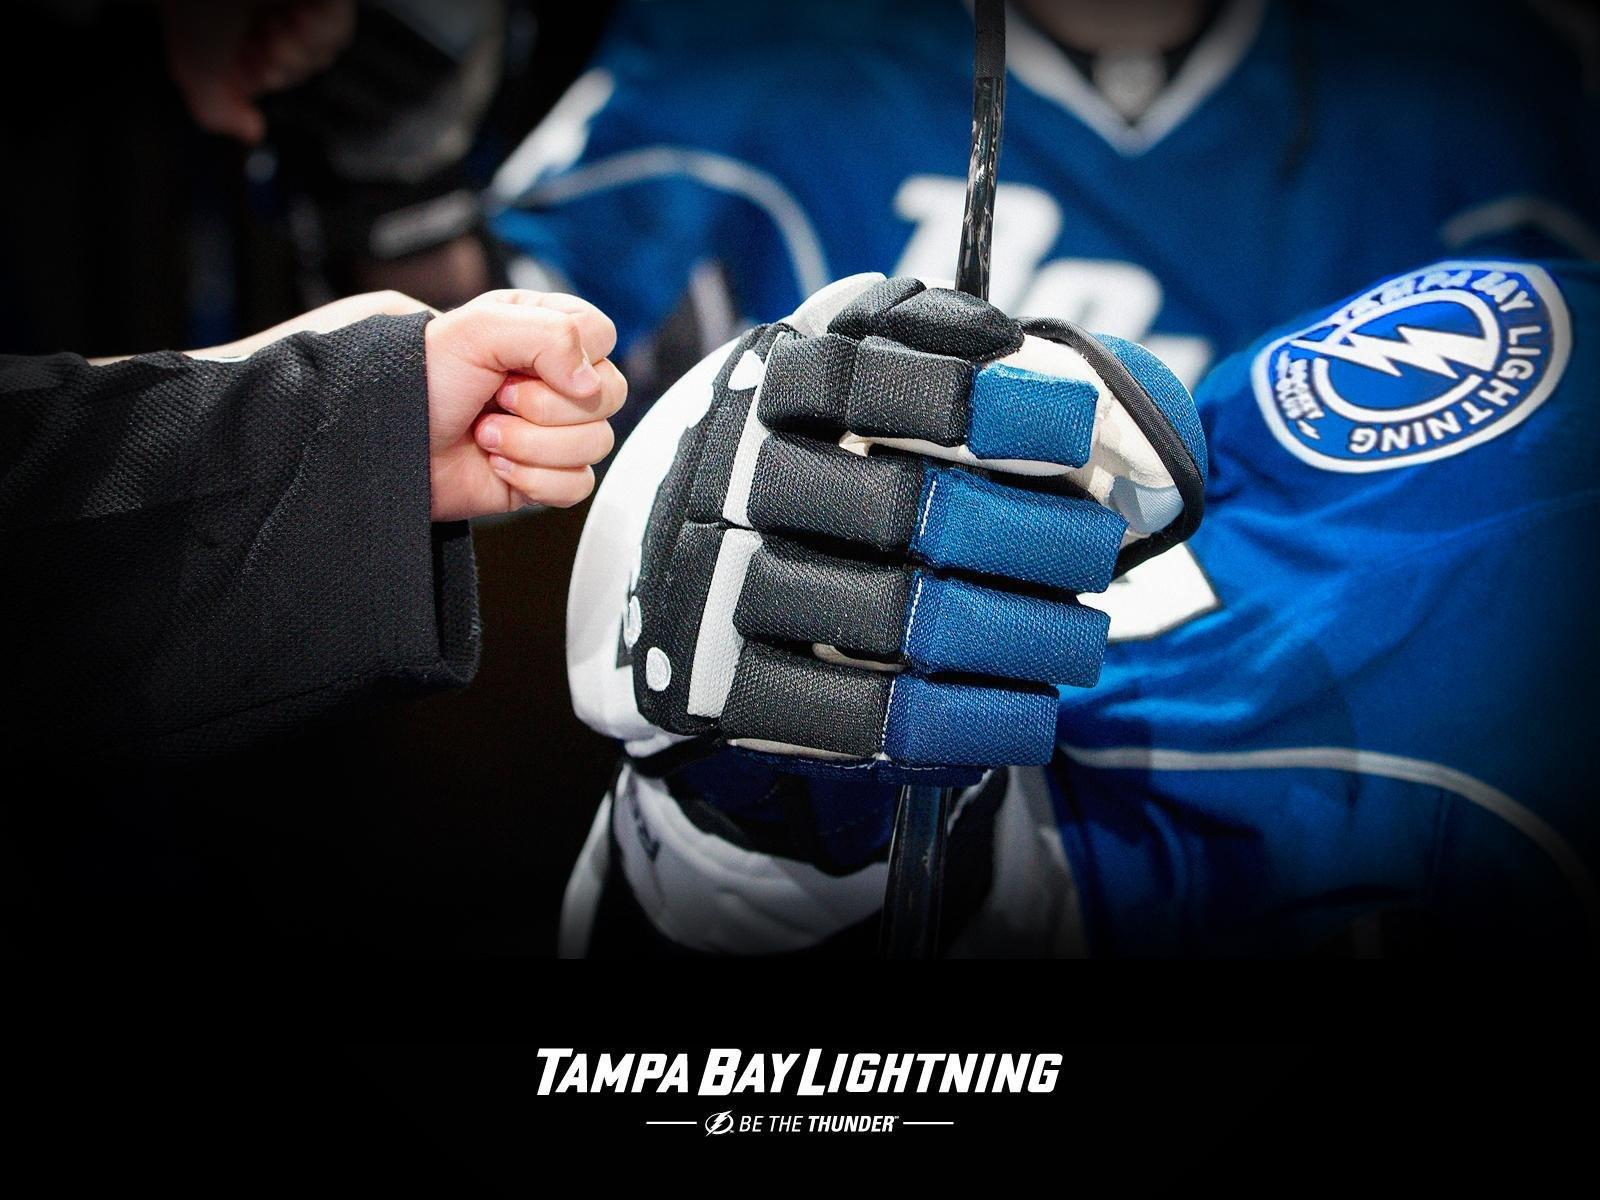 TAMPA BAY LIGHTNING nhl hockey